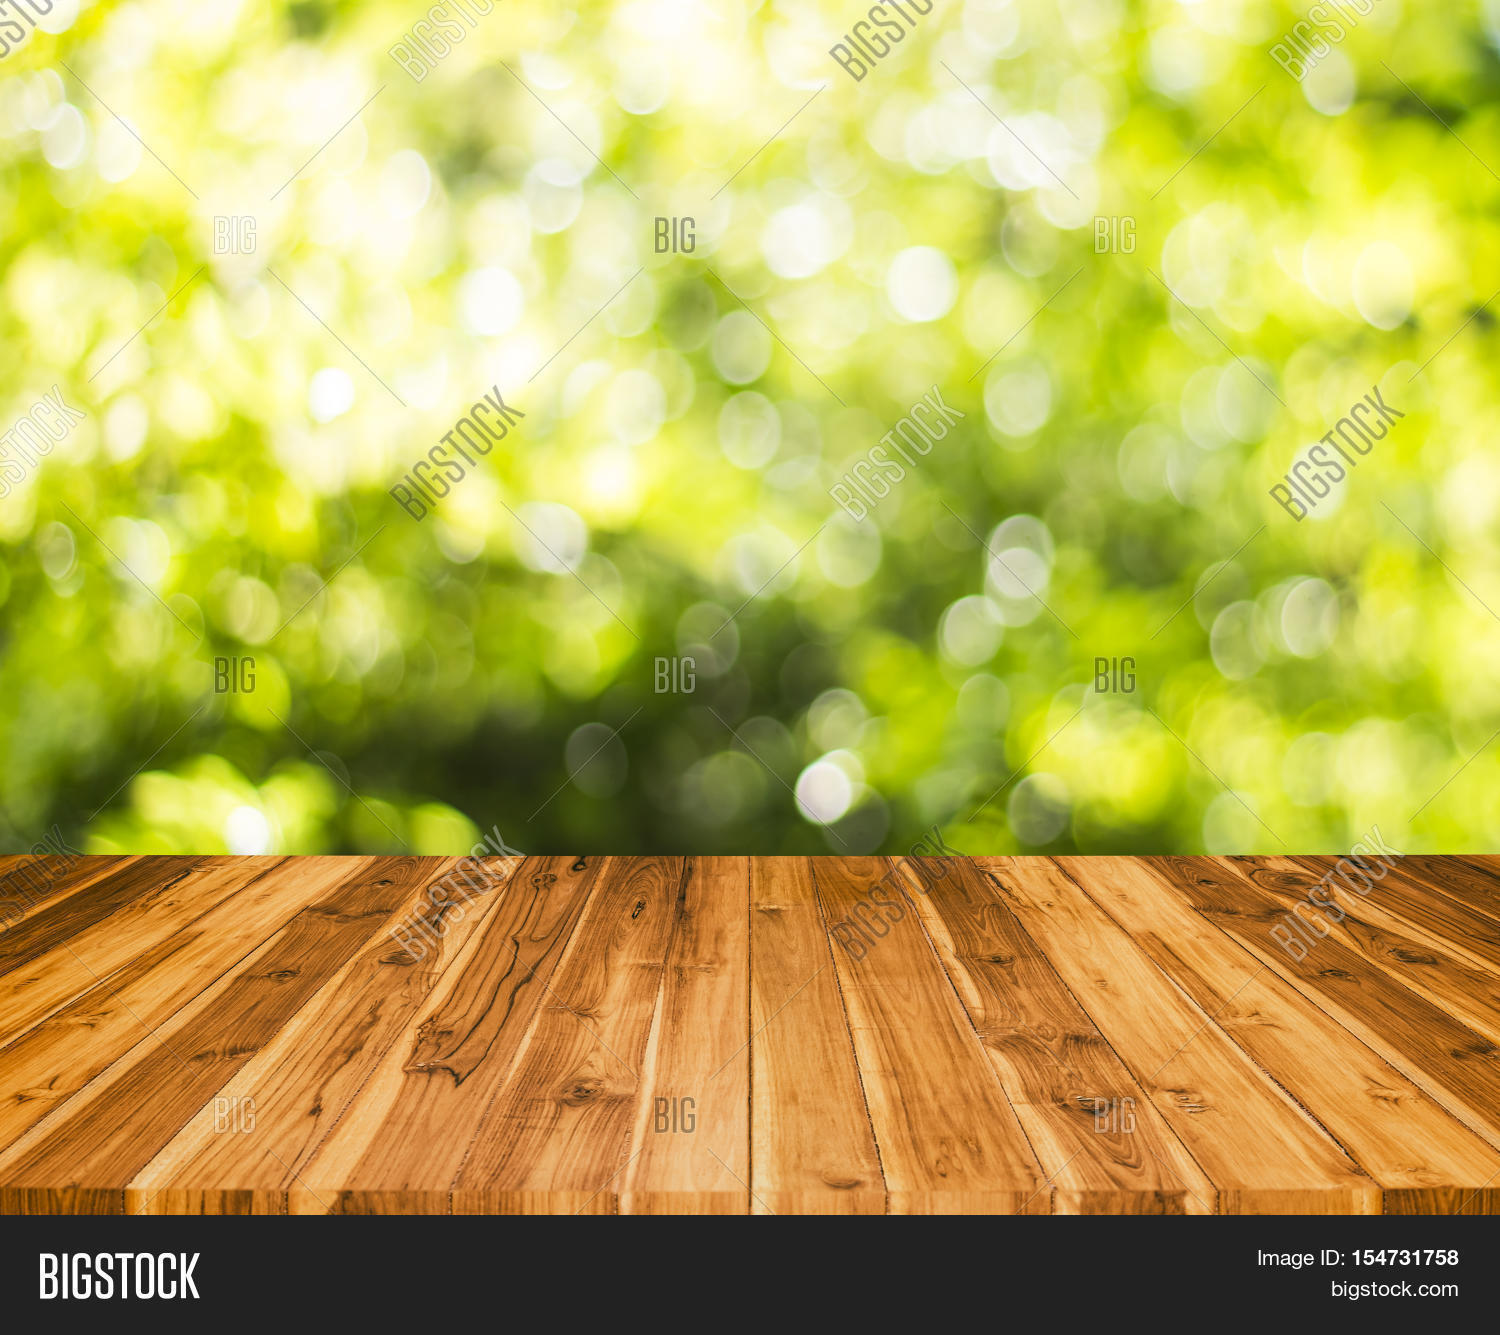 Wood table blur tree background image photo bigstock for Table background